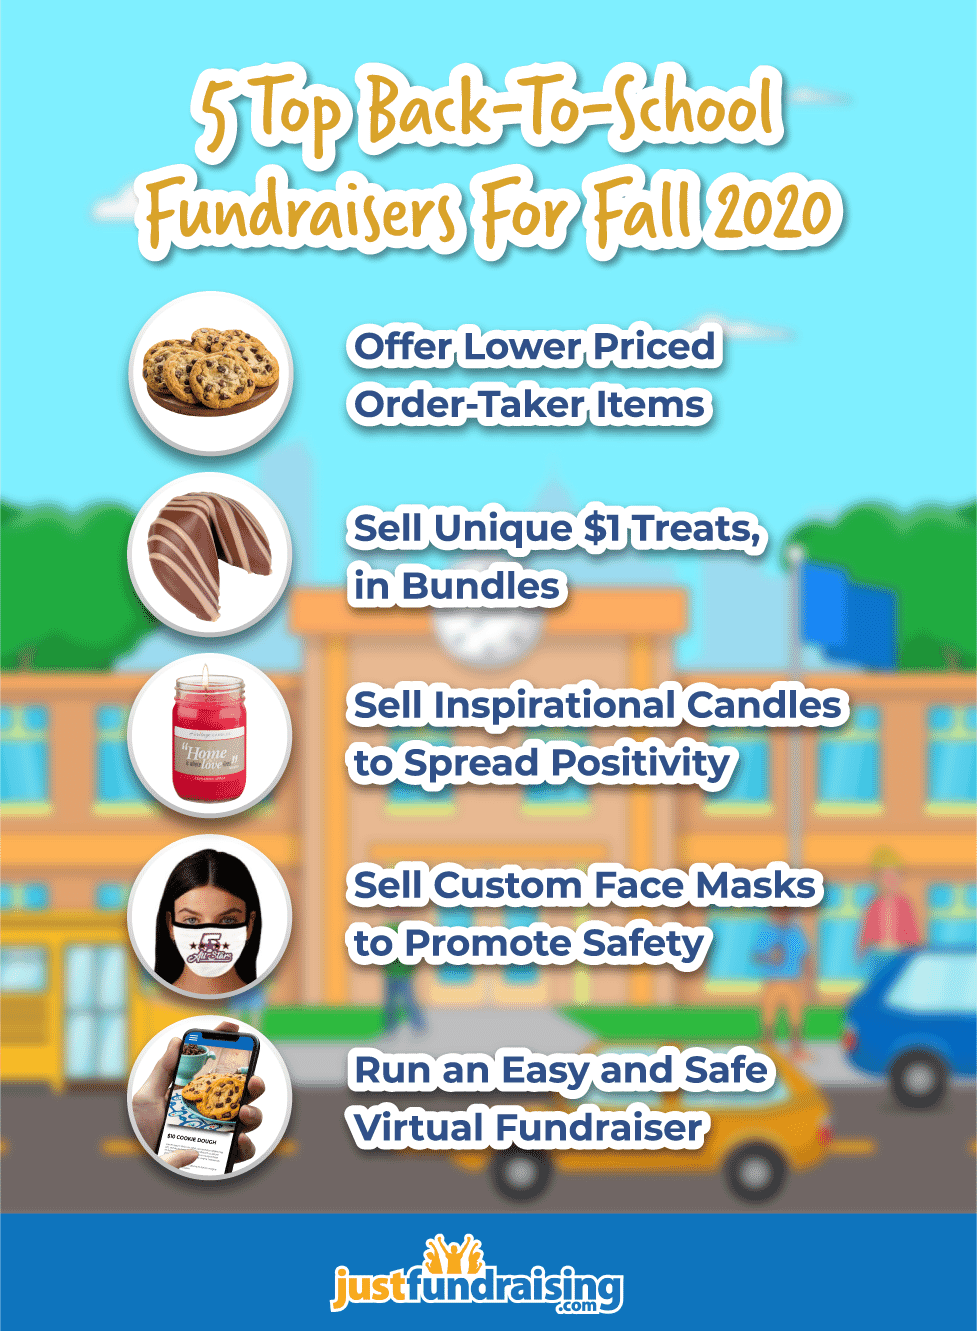 5 top back to school fundraisers